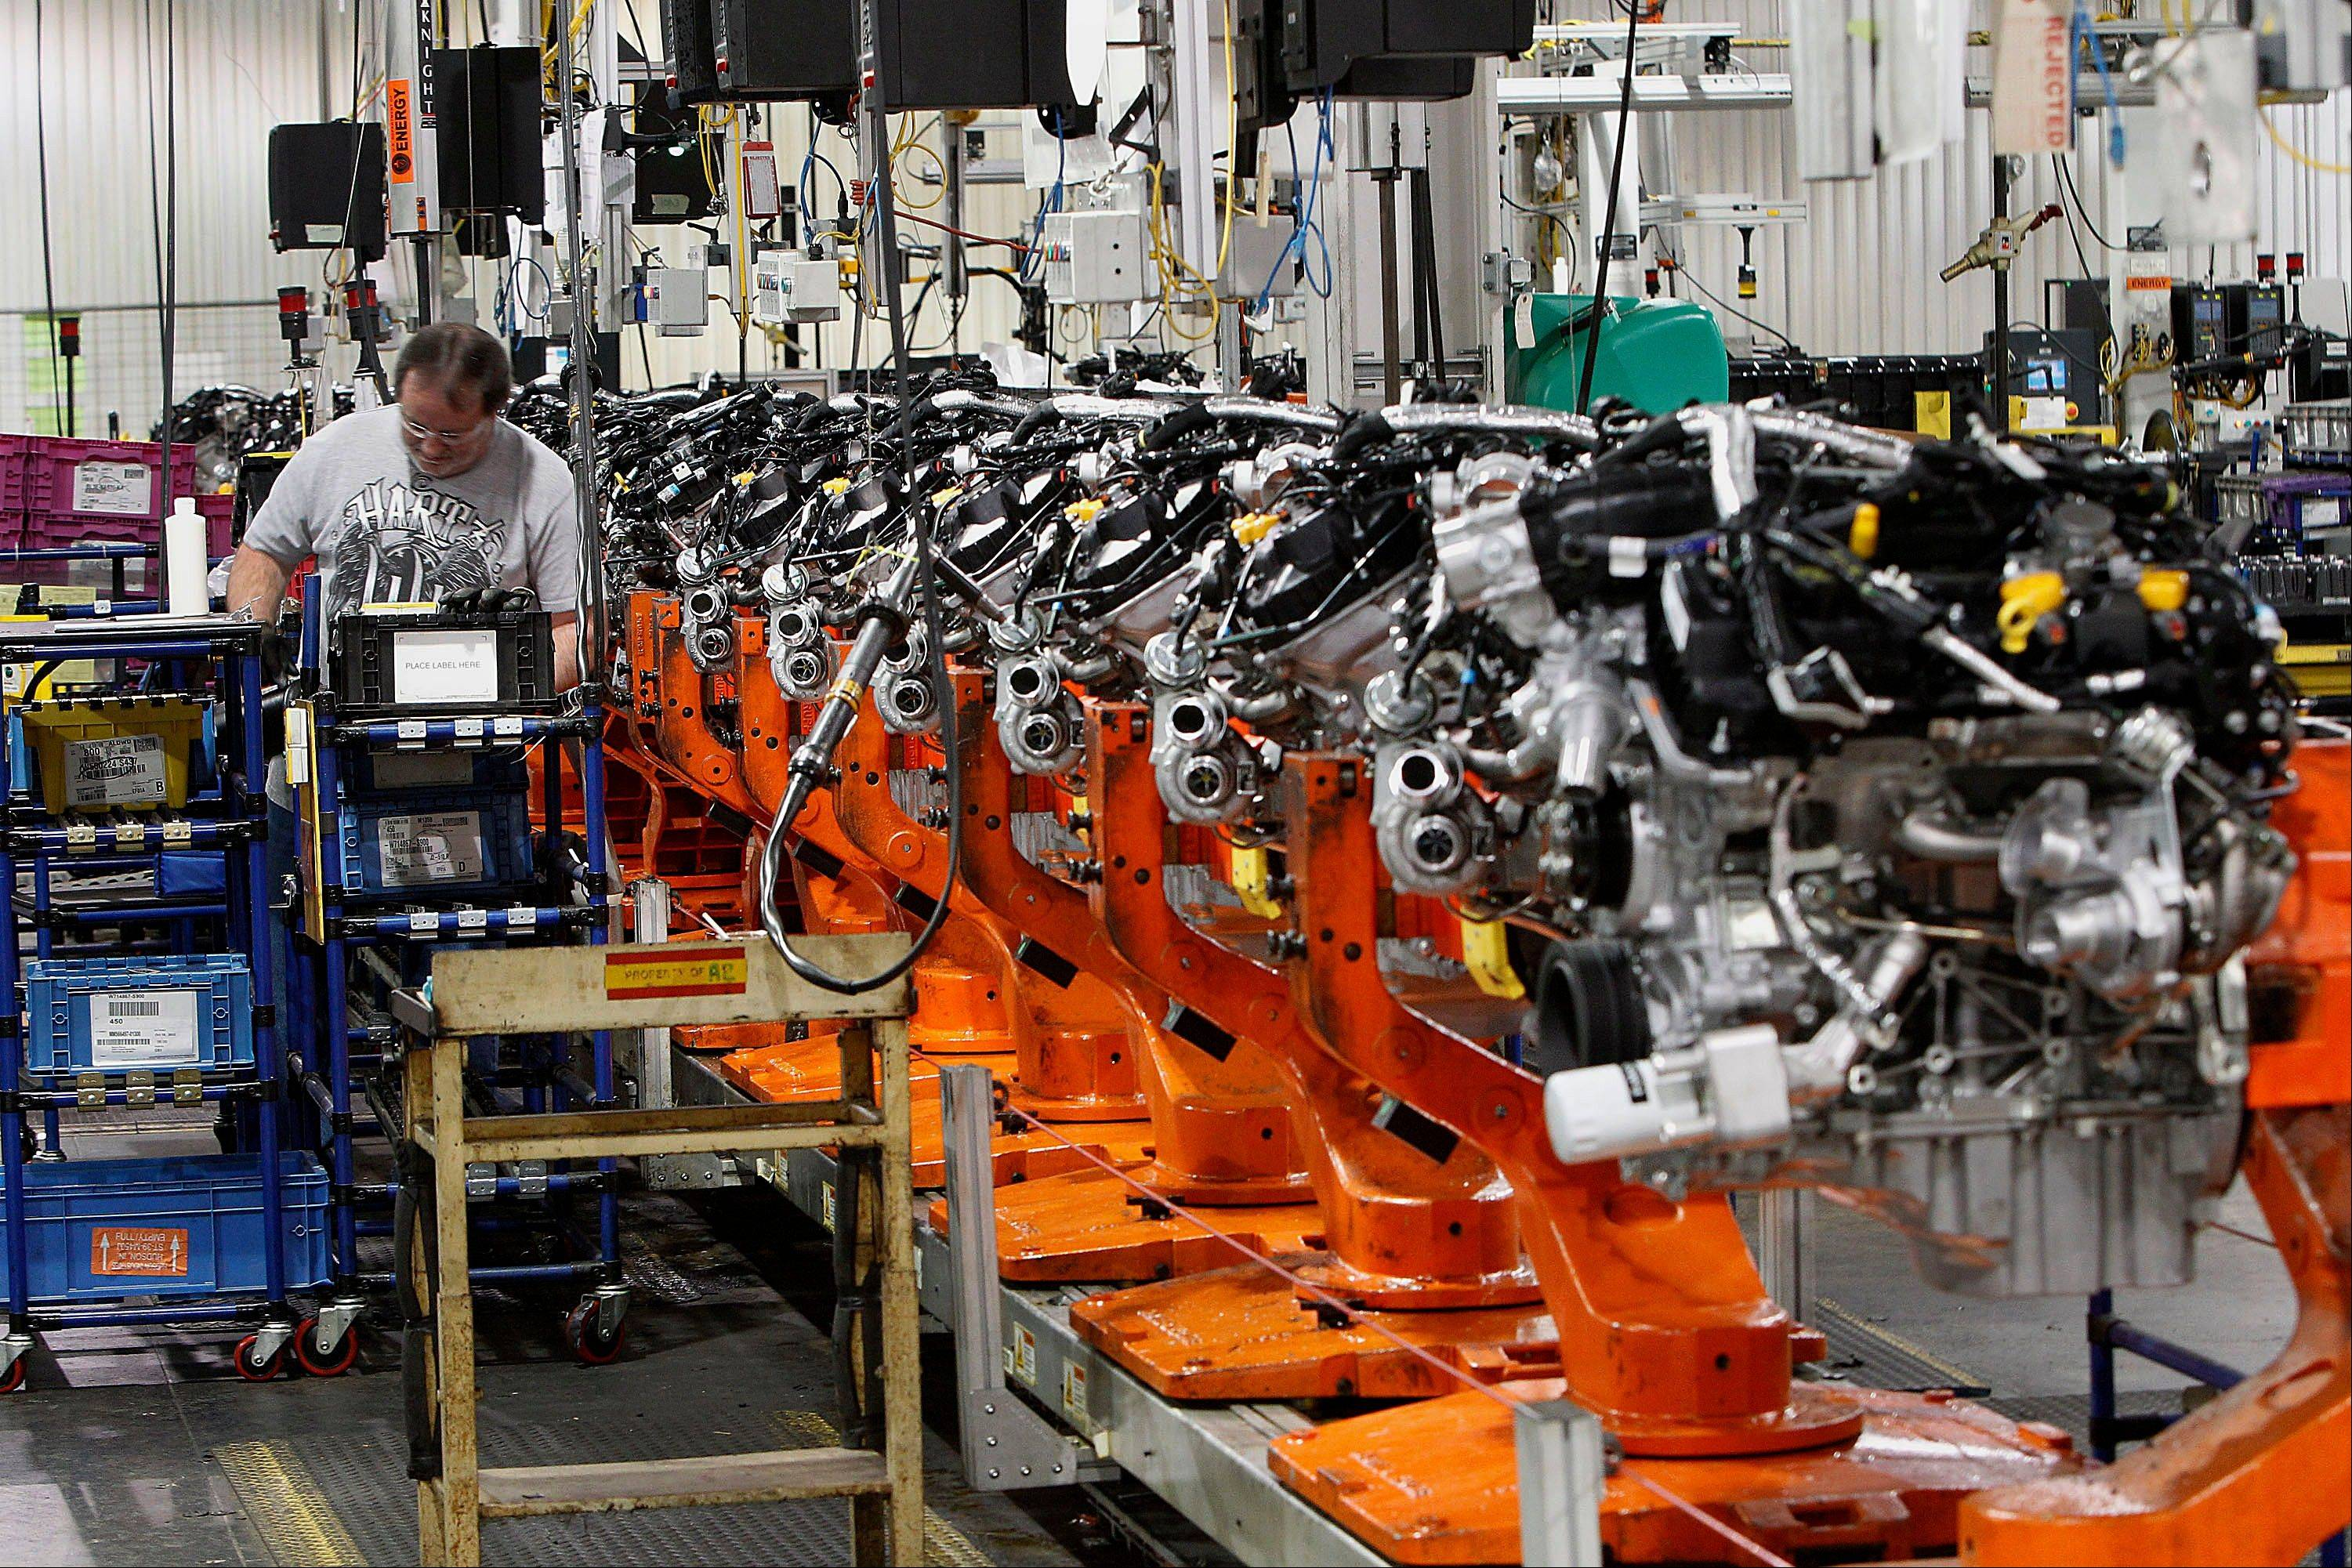 Employee Cliff McCloskey assembles an 2.0 liter ecoboost engines last Feb. 21 on the production line at the Ford Motor Co. Cleveland Engine Plant in Brook Park, Ohio.